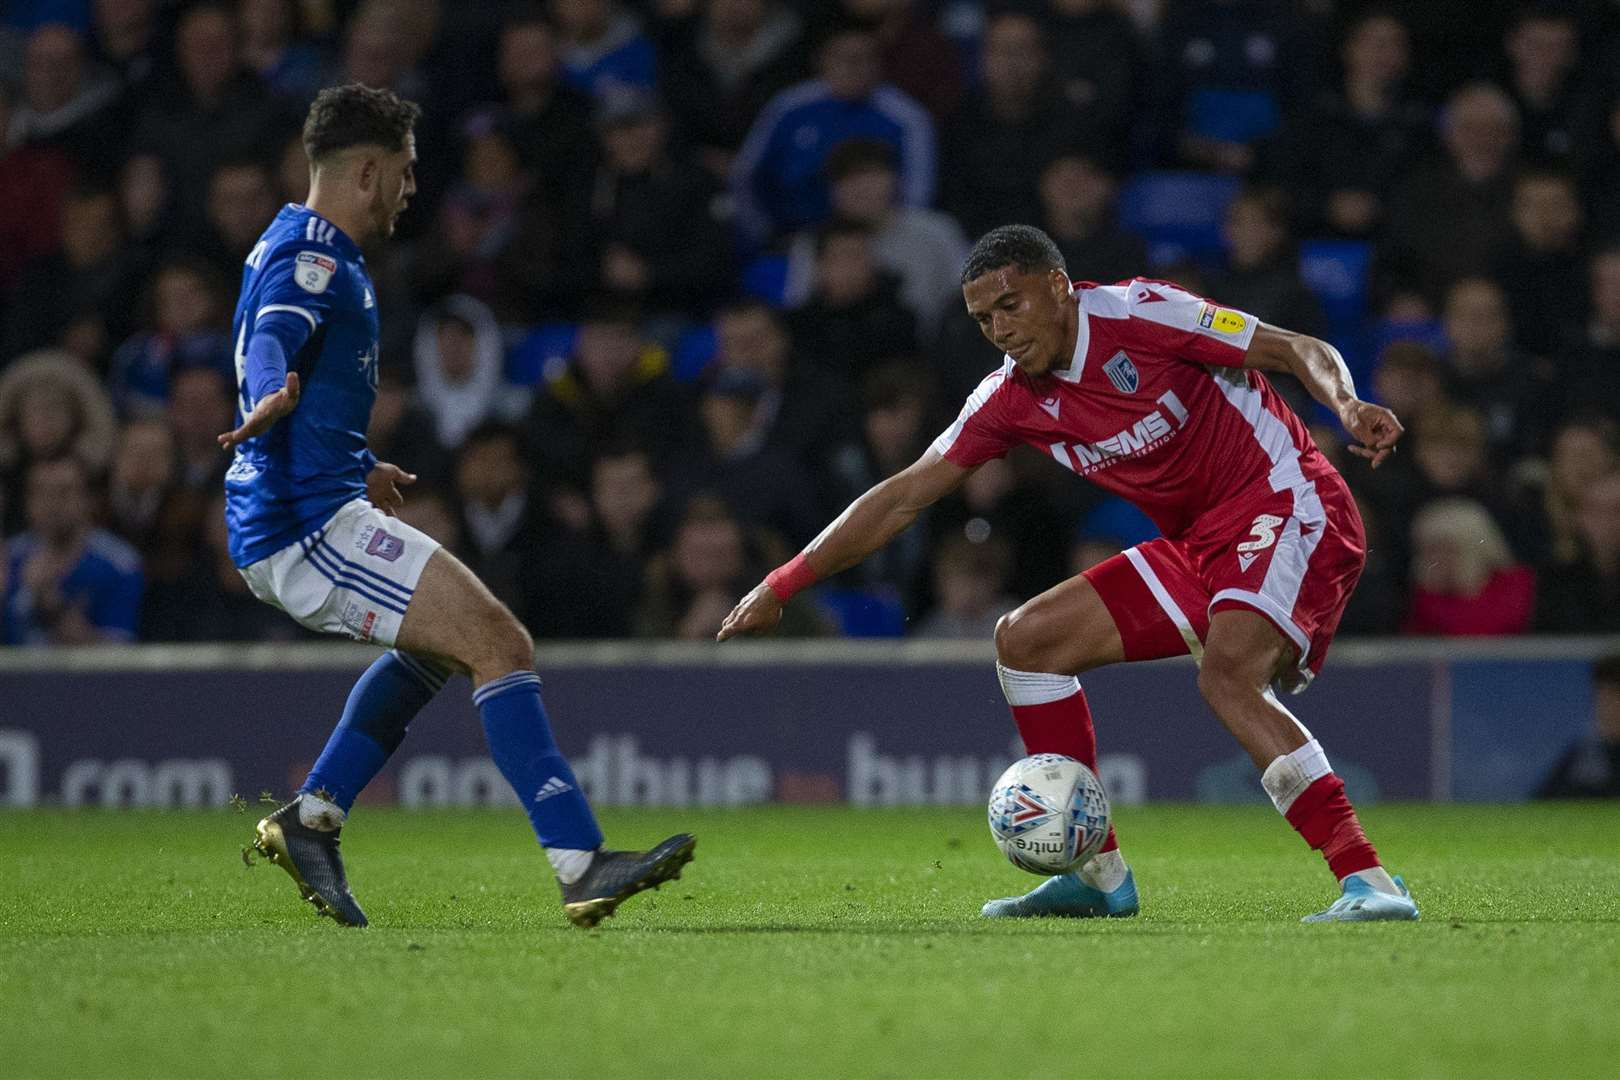 Bradley Garmston making his first appearance for the Gills this season, at Ipswich, on Tuesday Picture: @KentProImages